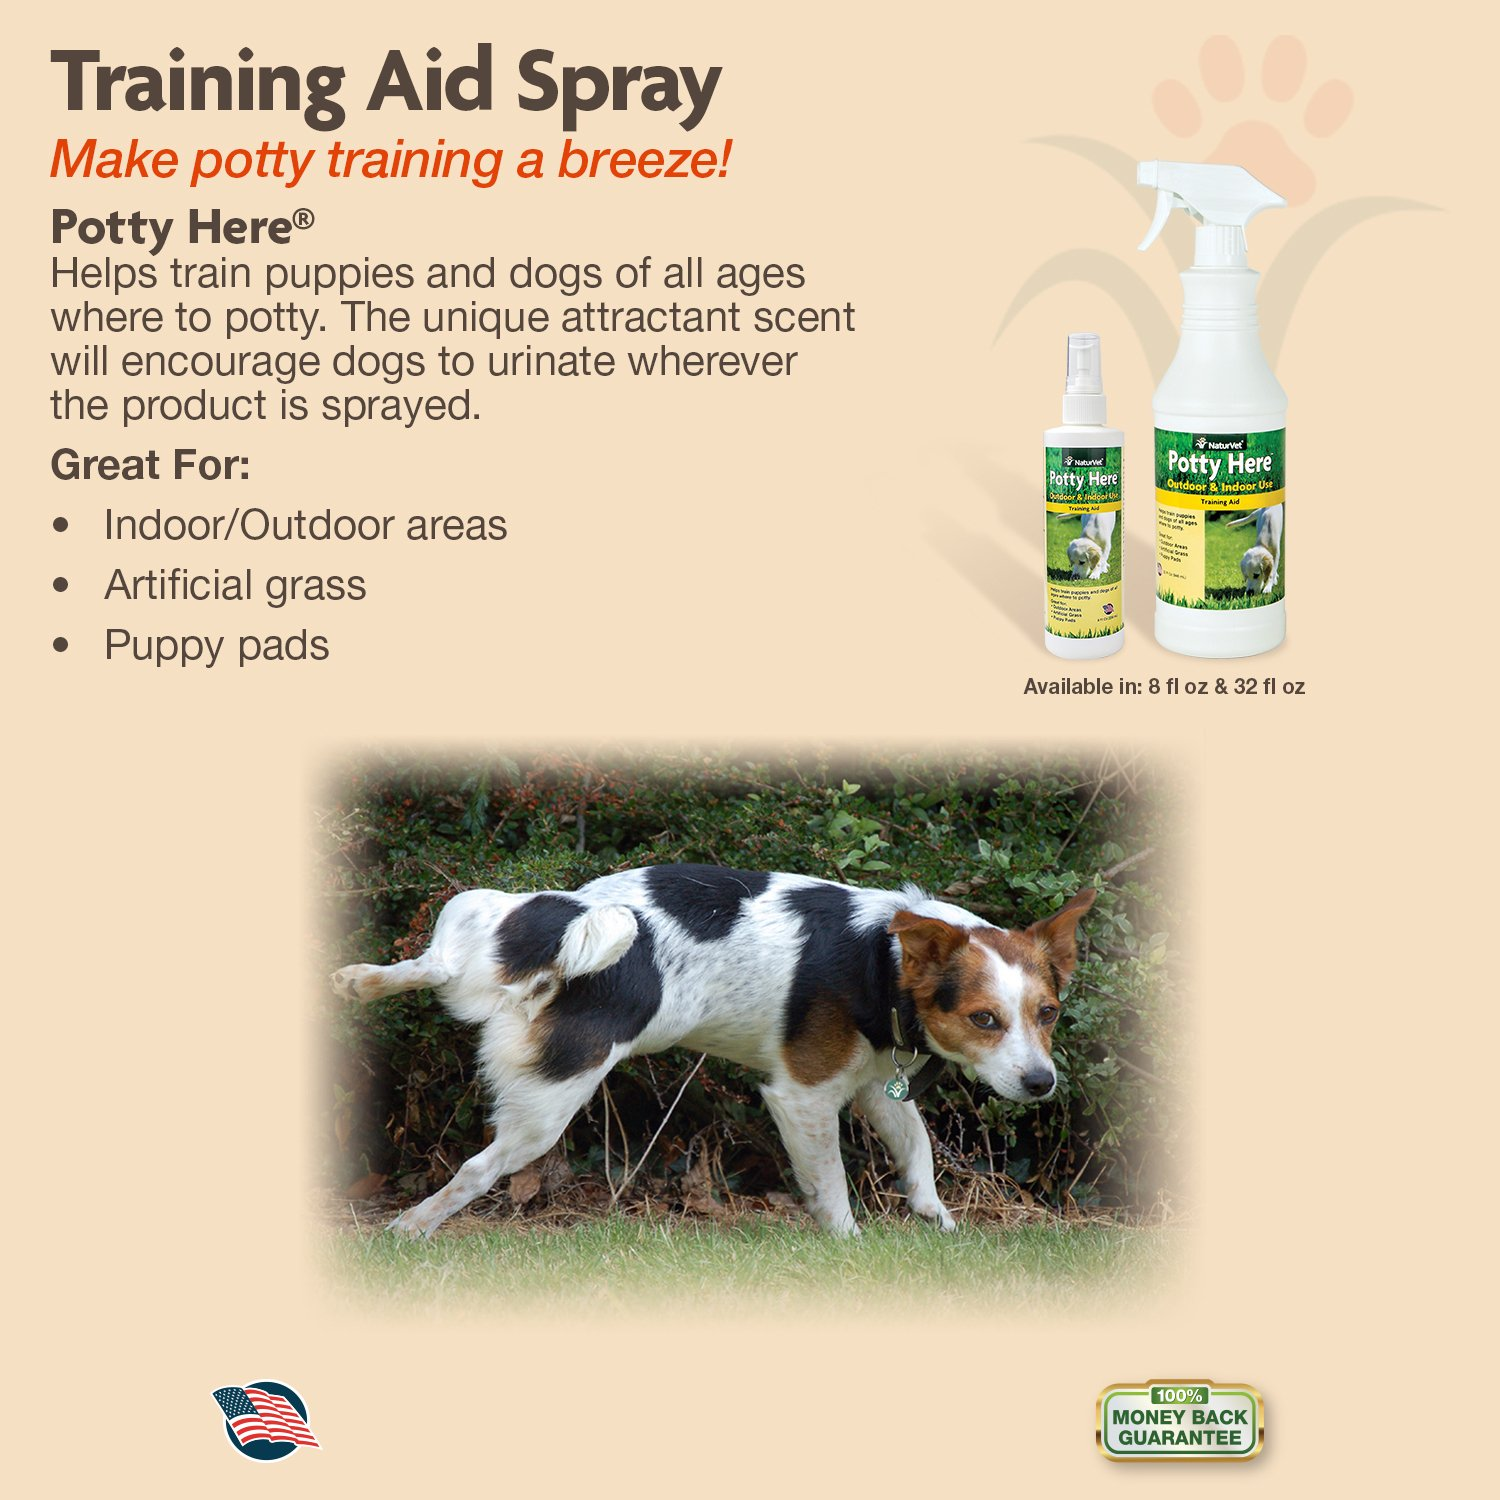 Amazon.com : NaturVet Potty Here Training Aid Spray for Puppies and ... | How Do You Potty Train A Dog